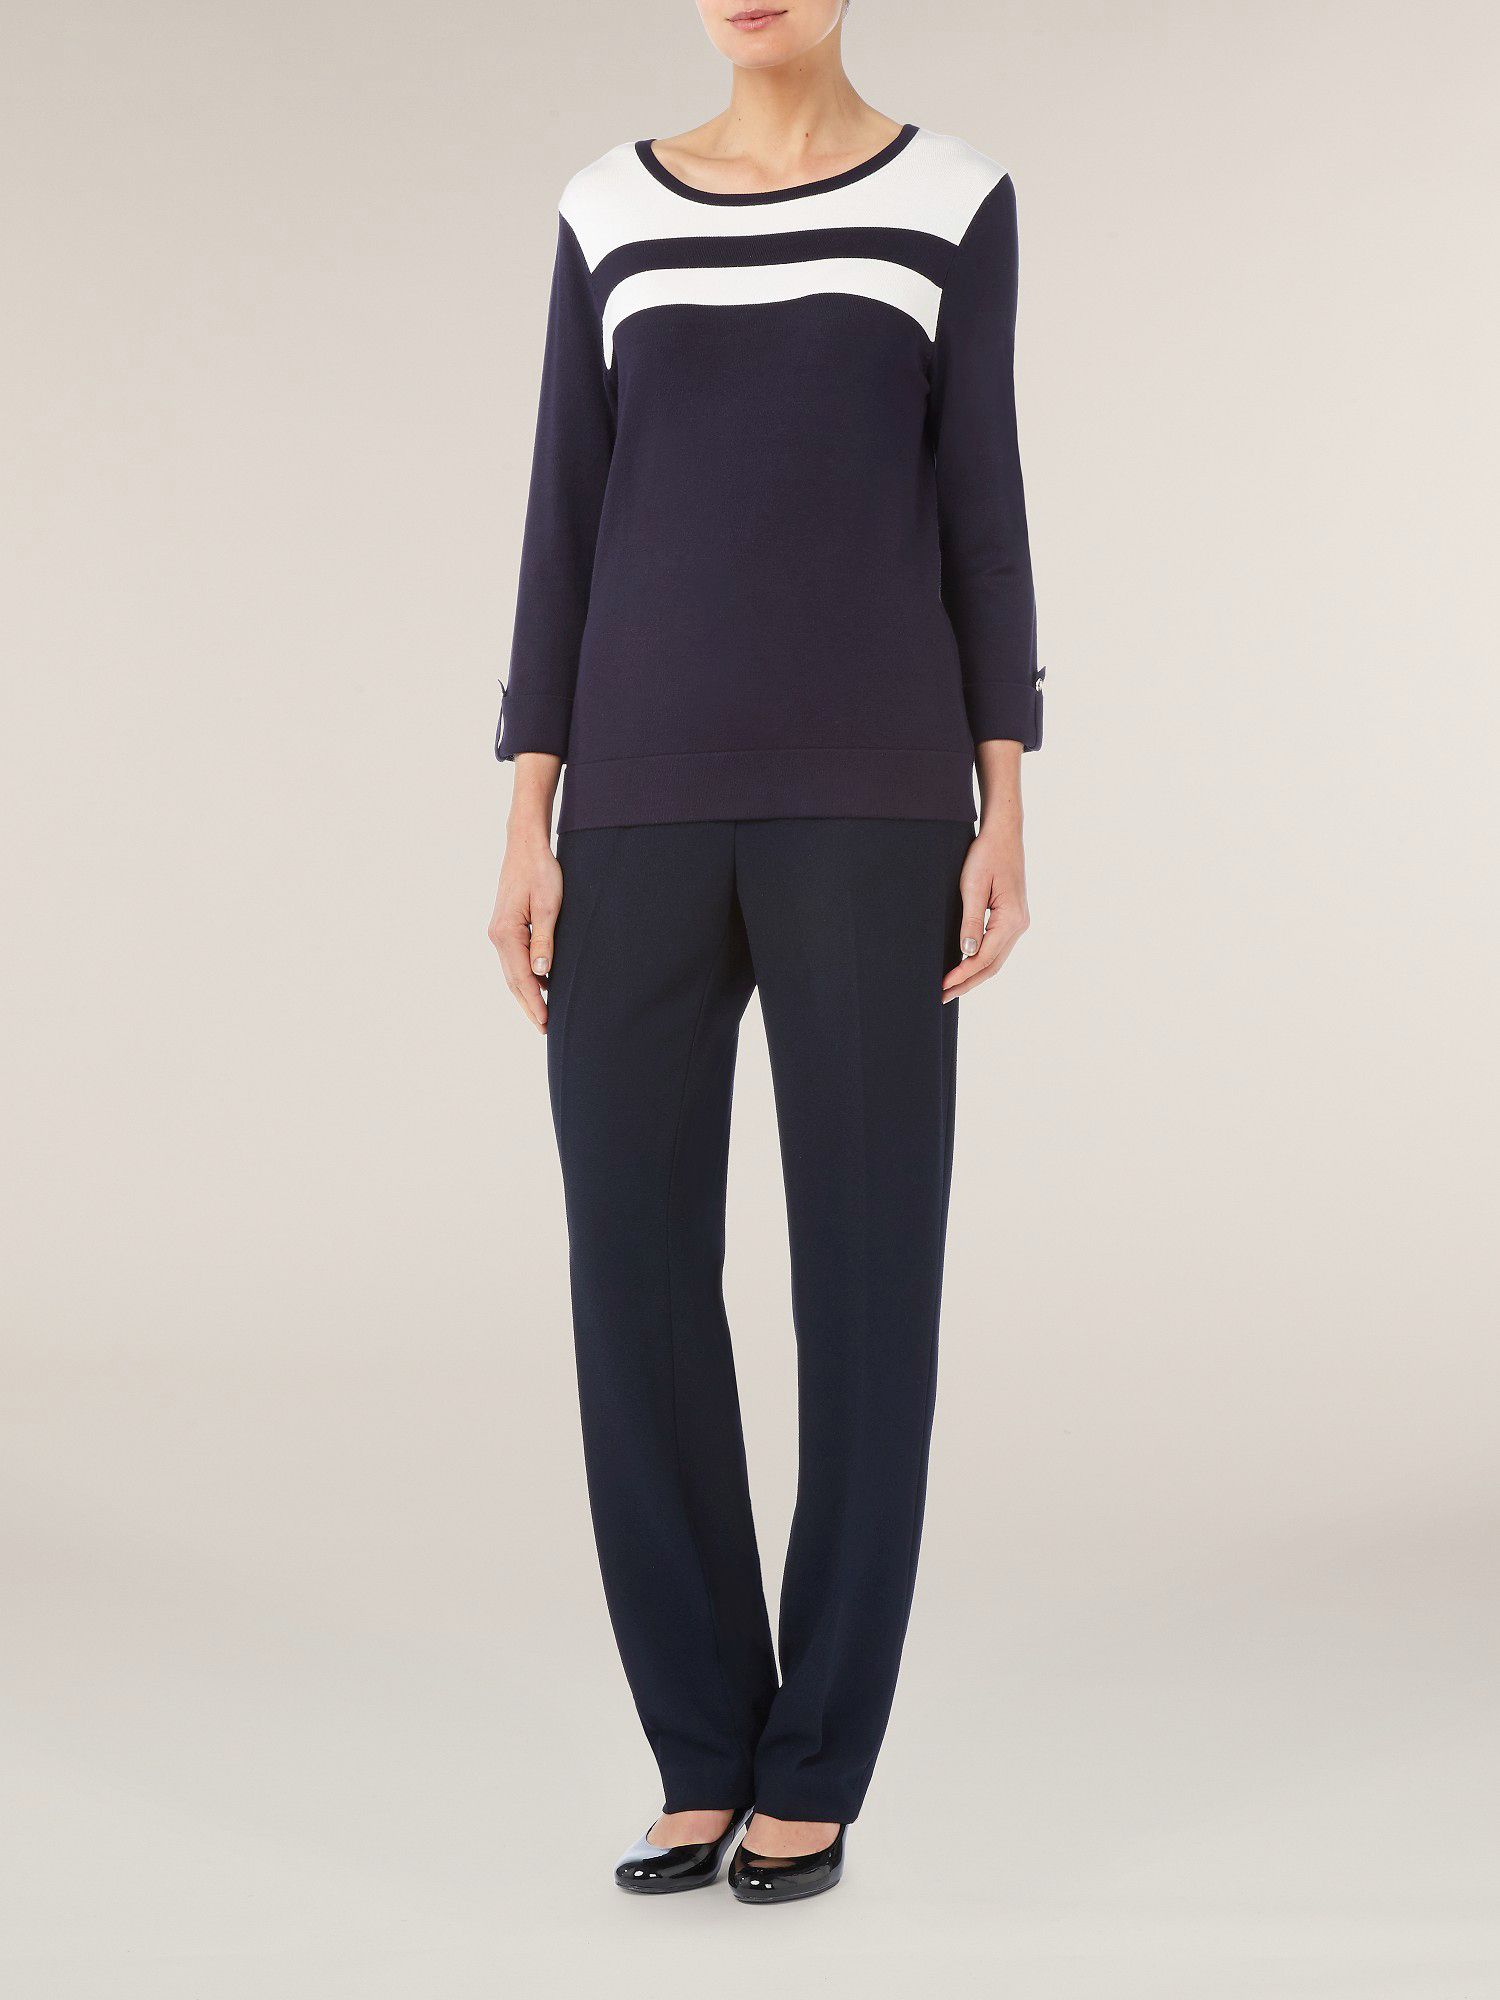 Navy & ivory contrast sweater